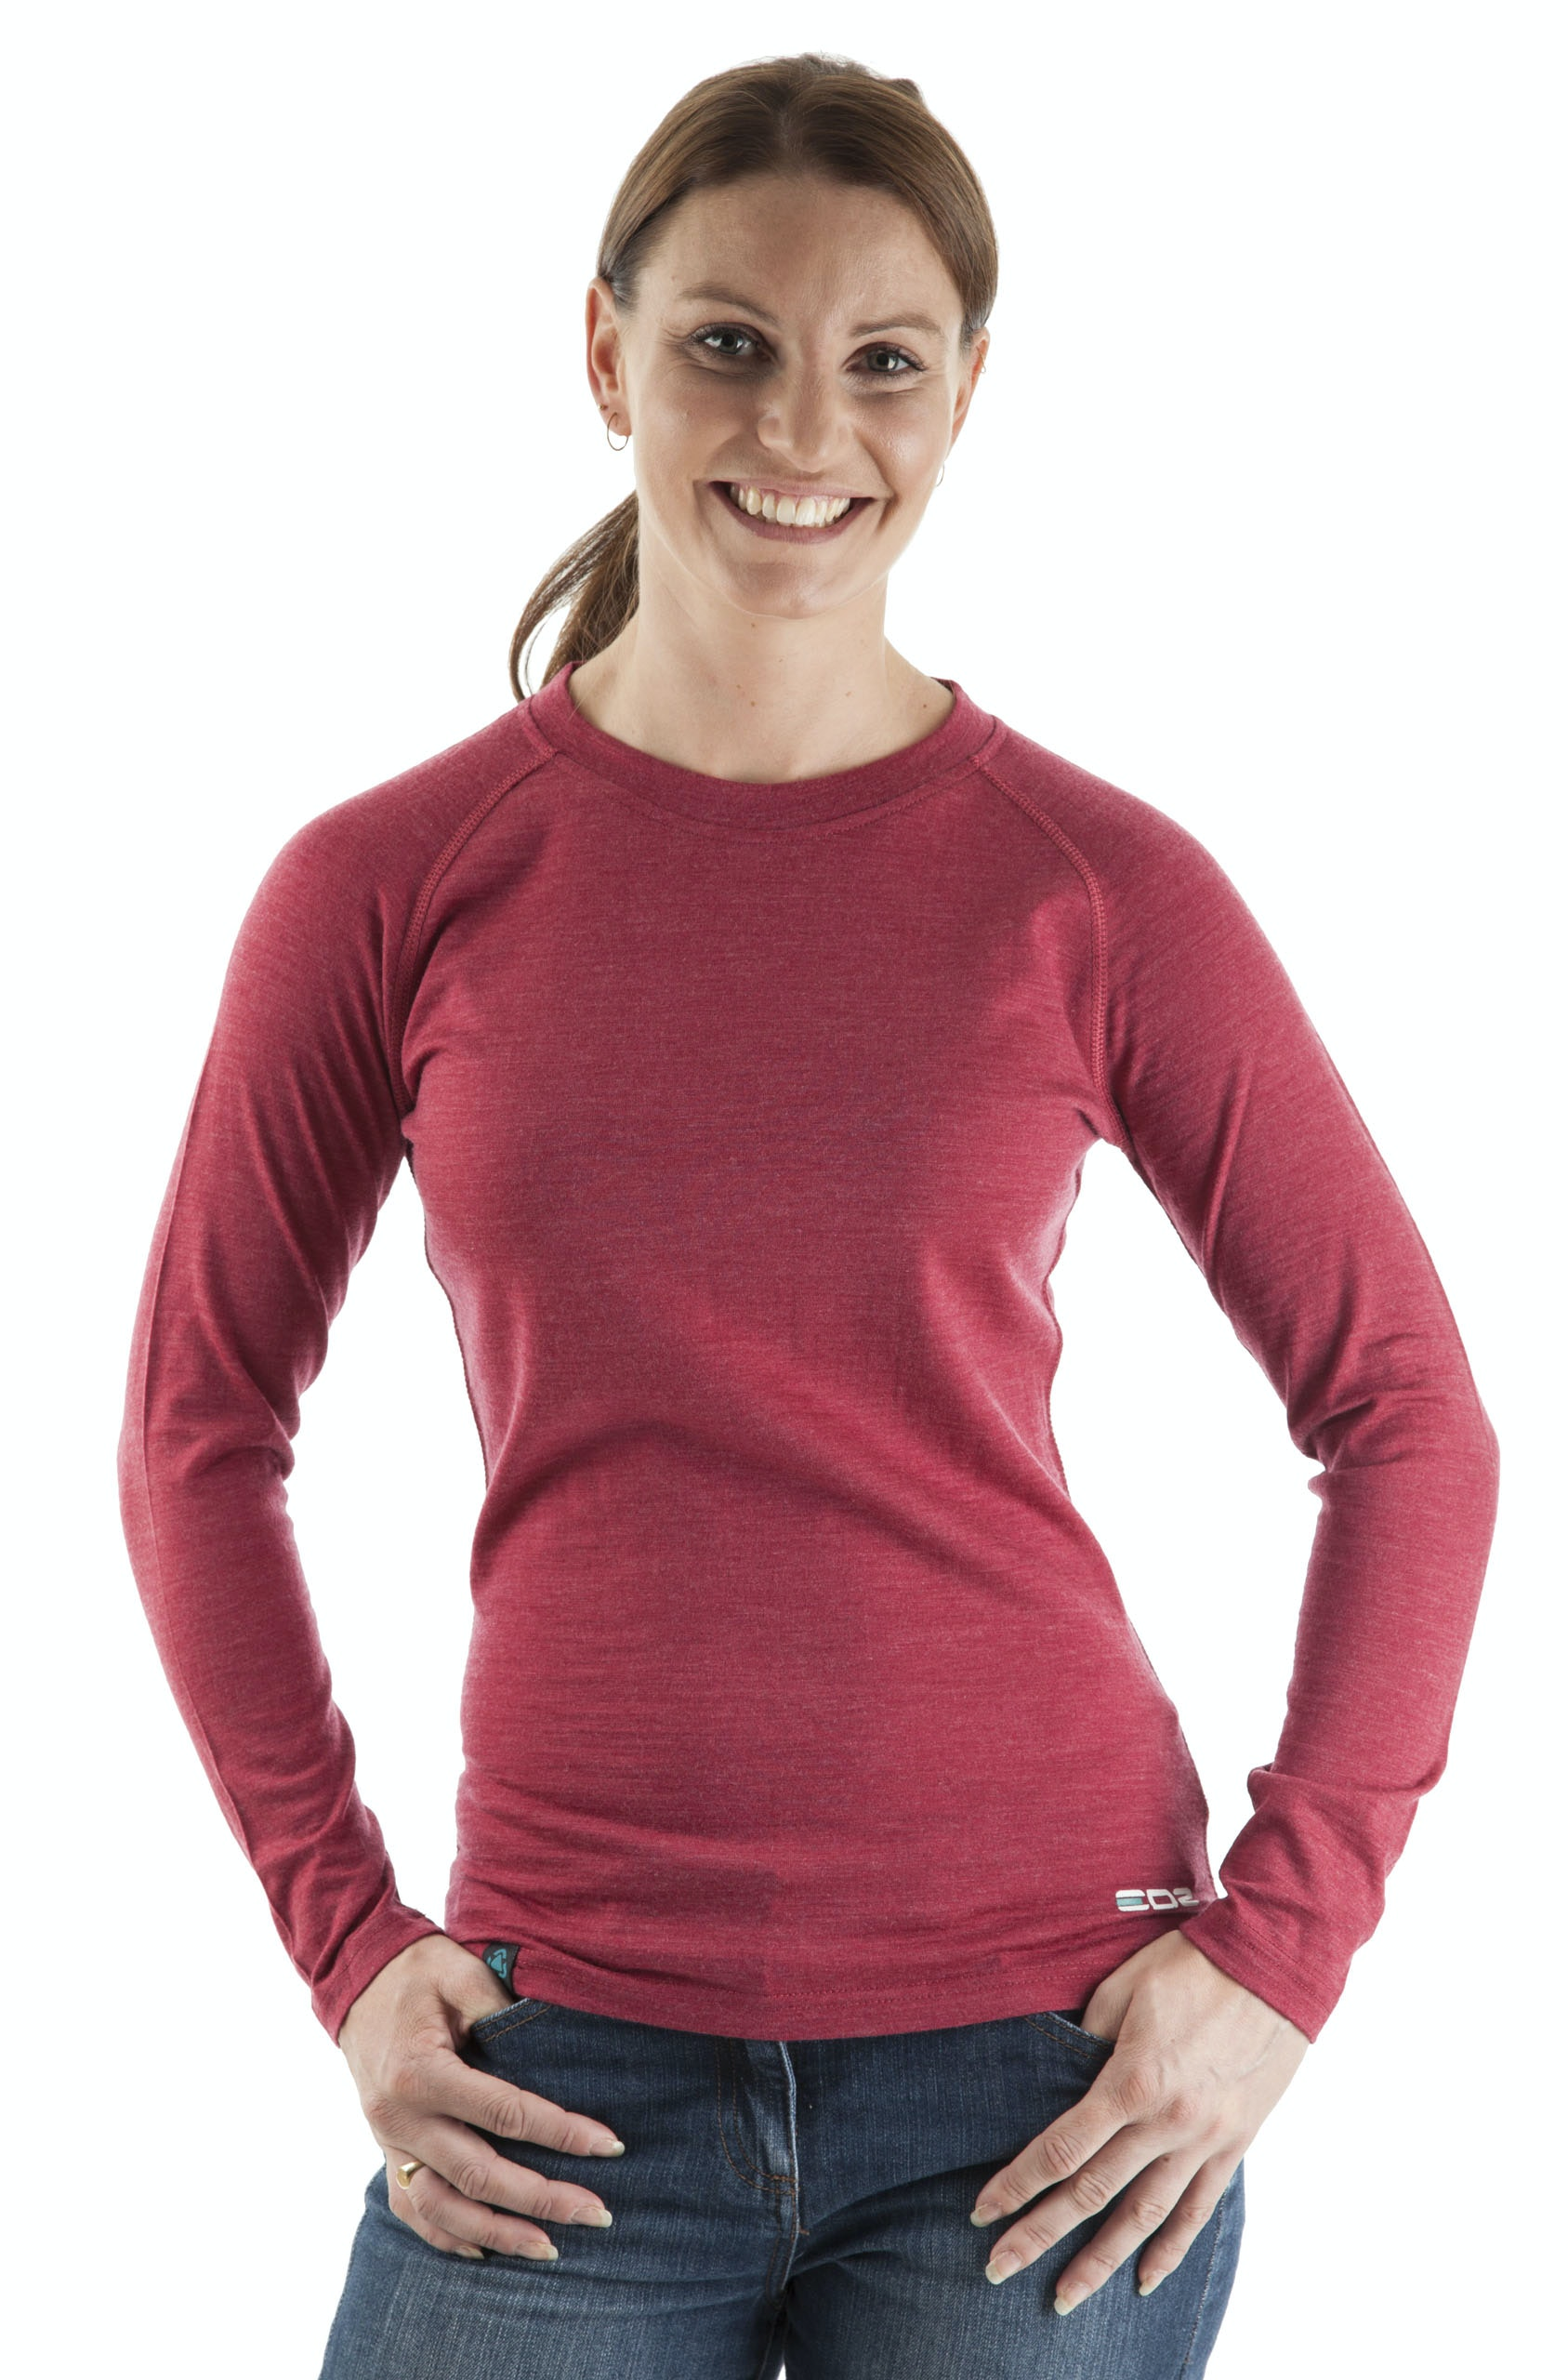 Win an EDZ Merino Base Layer sweepstakes